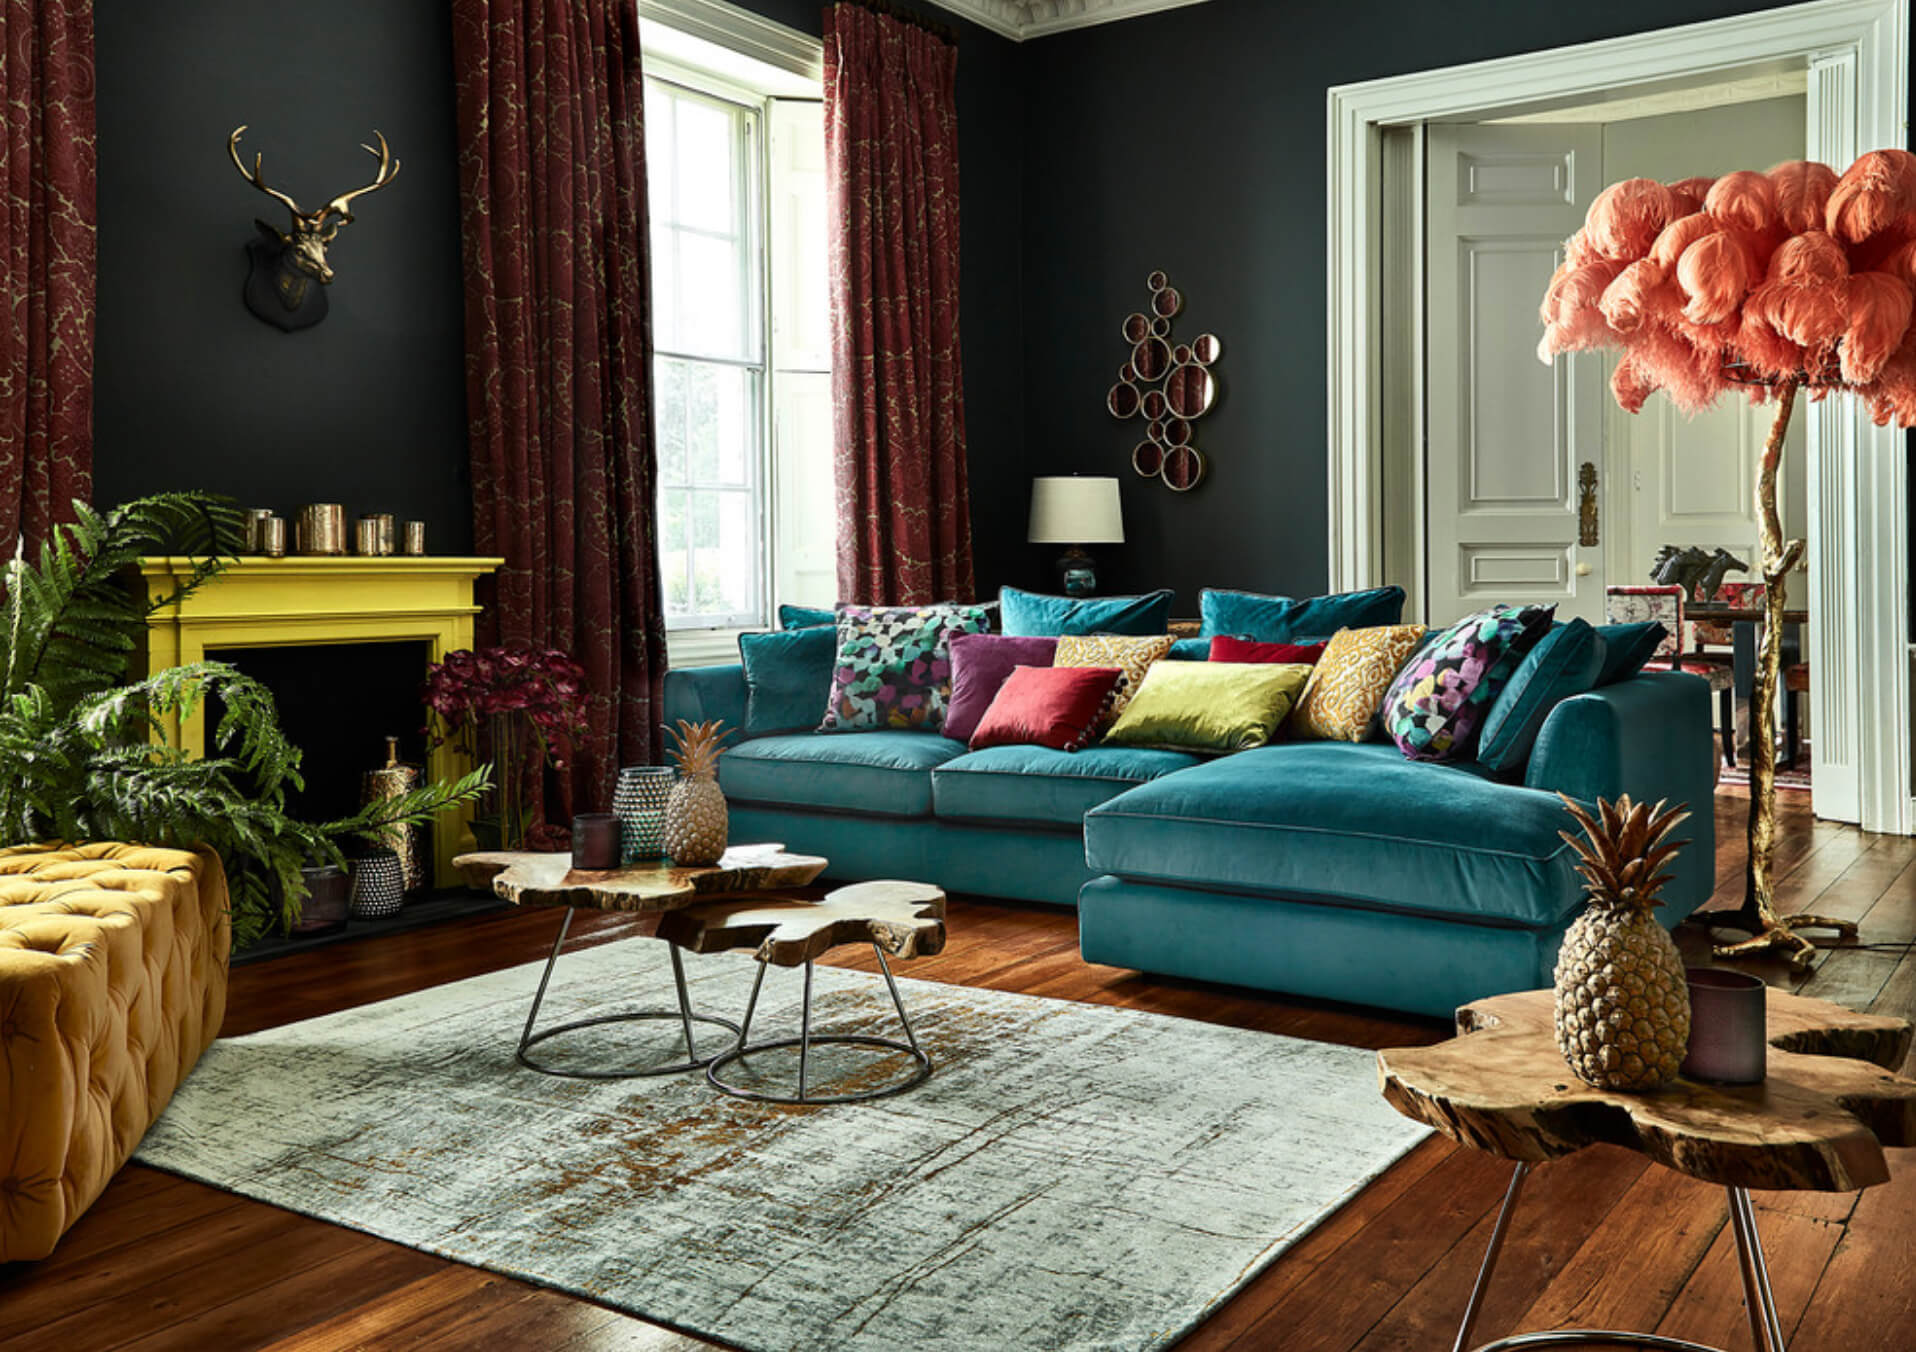 Maximalist living room